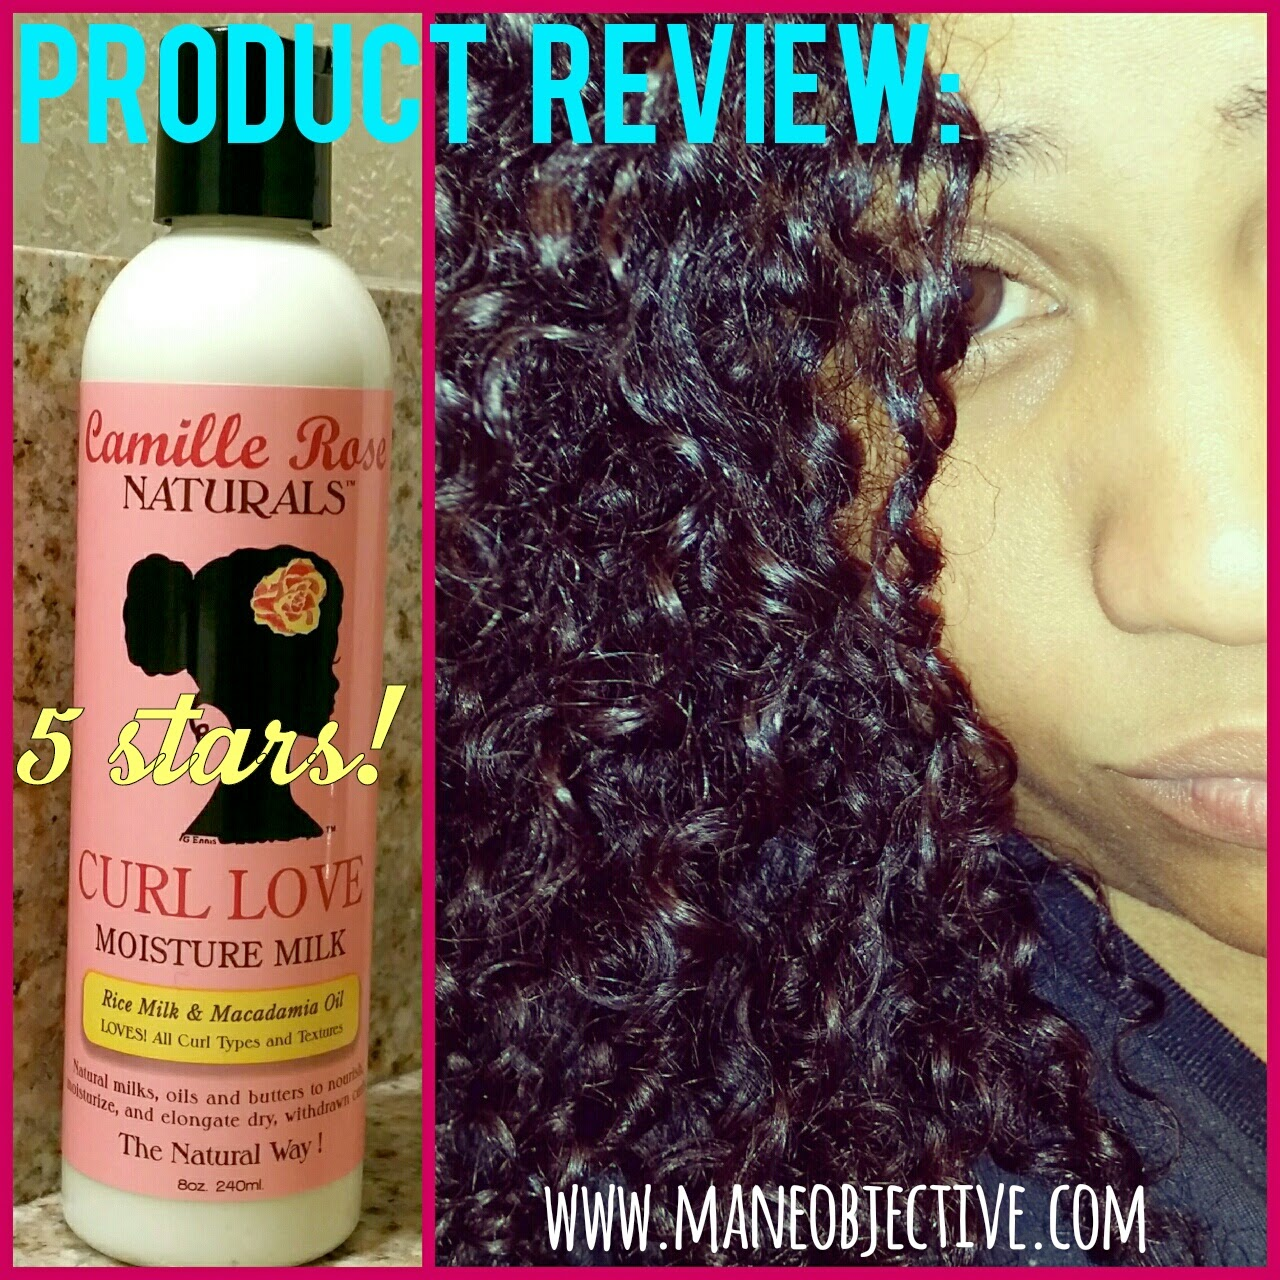 : Product Review: Camille Rose Naturals Curl Love Moisture Milk